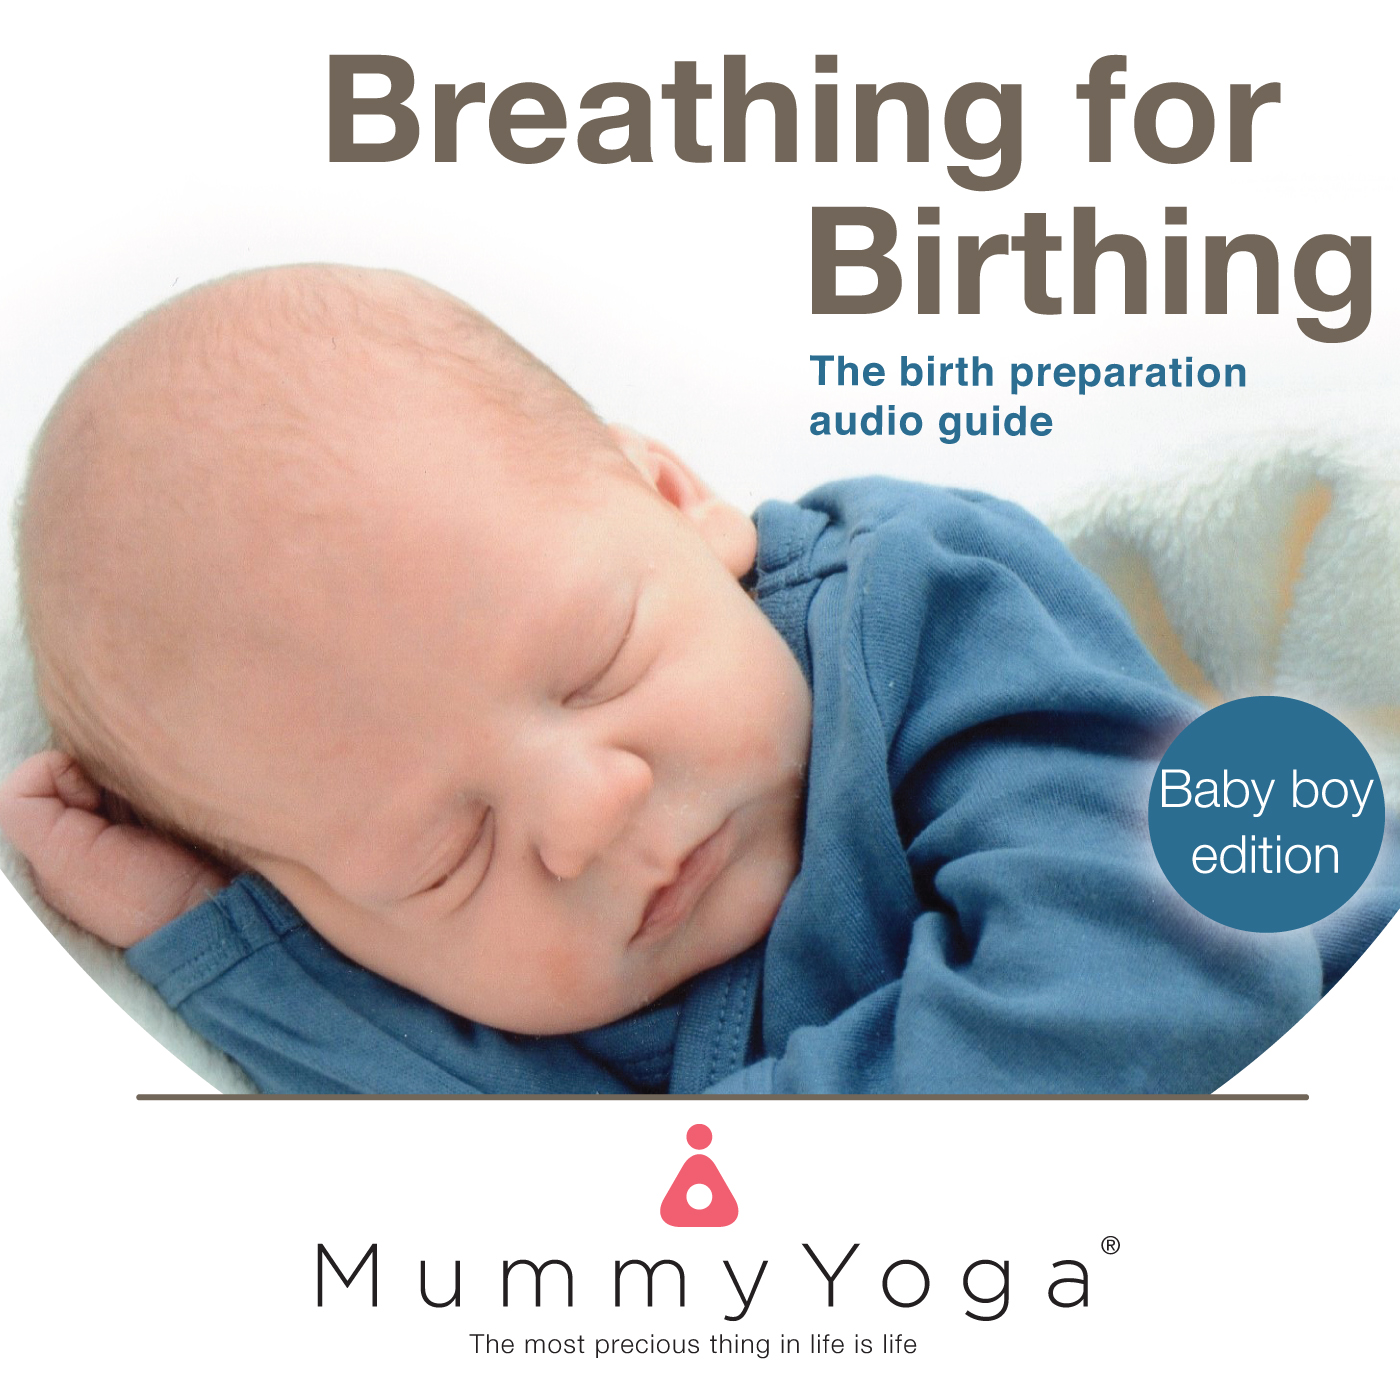 Breathing for Birthing audio guides